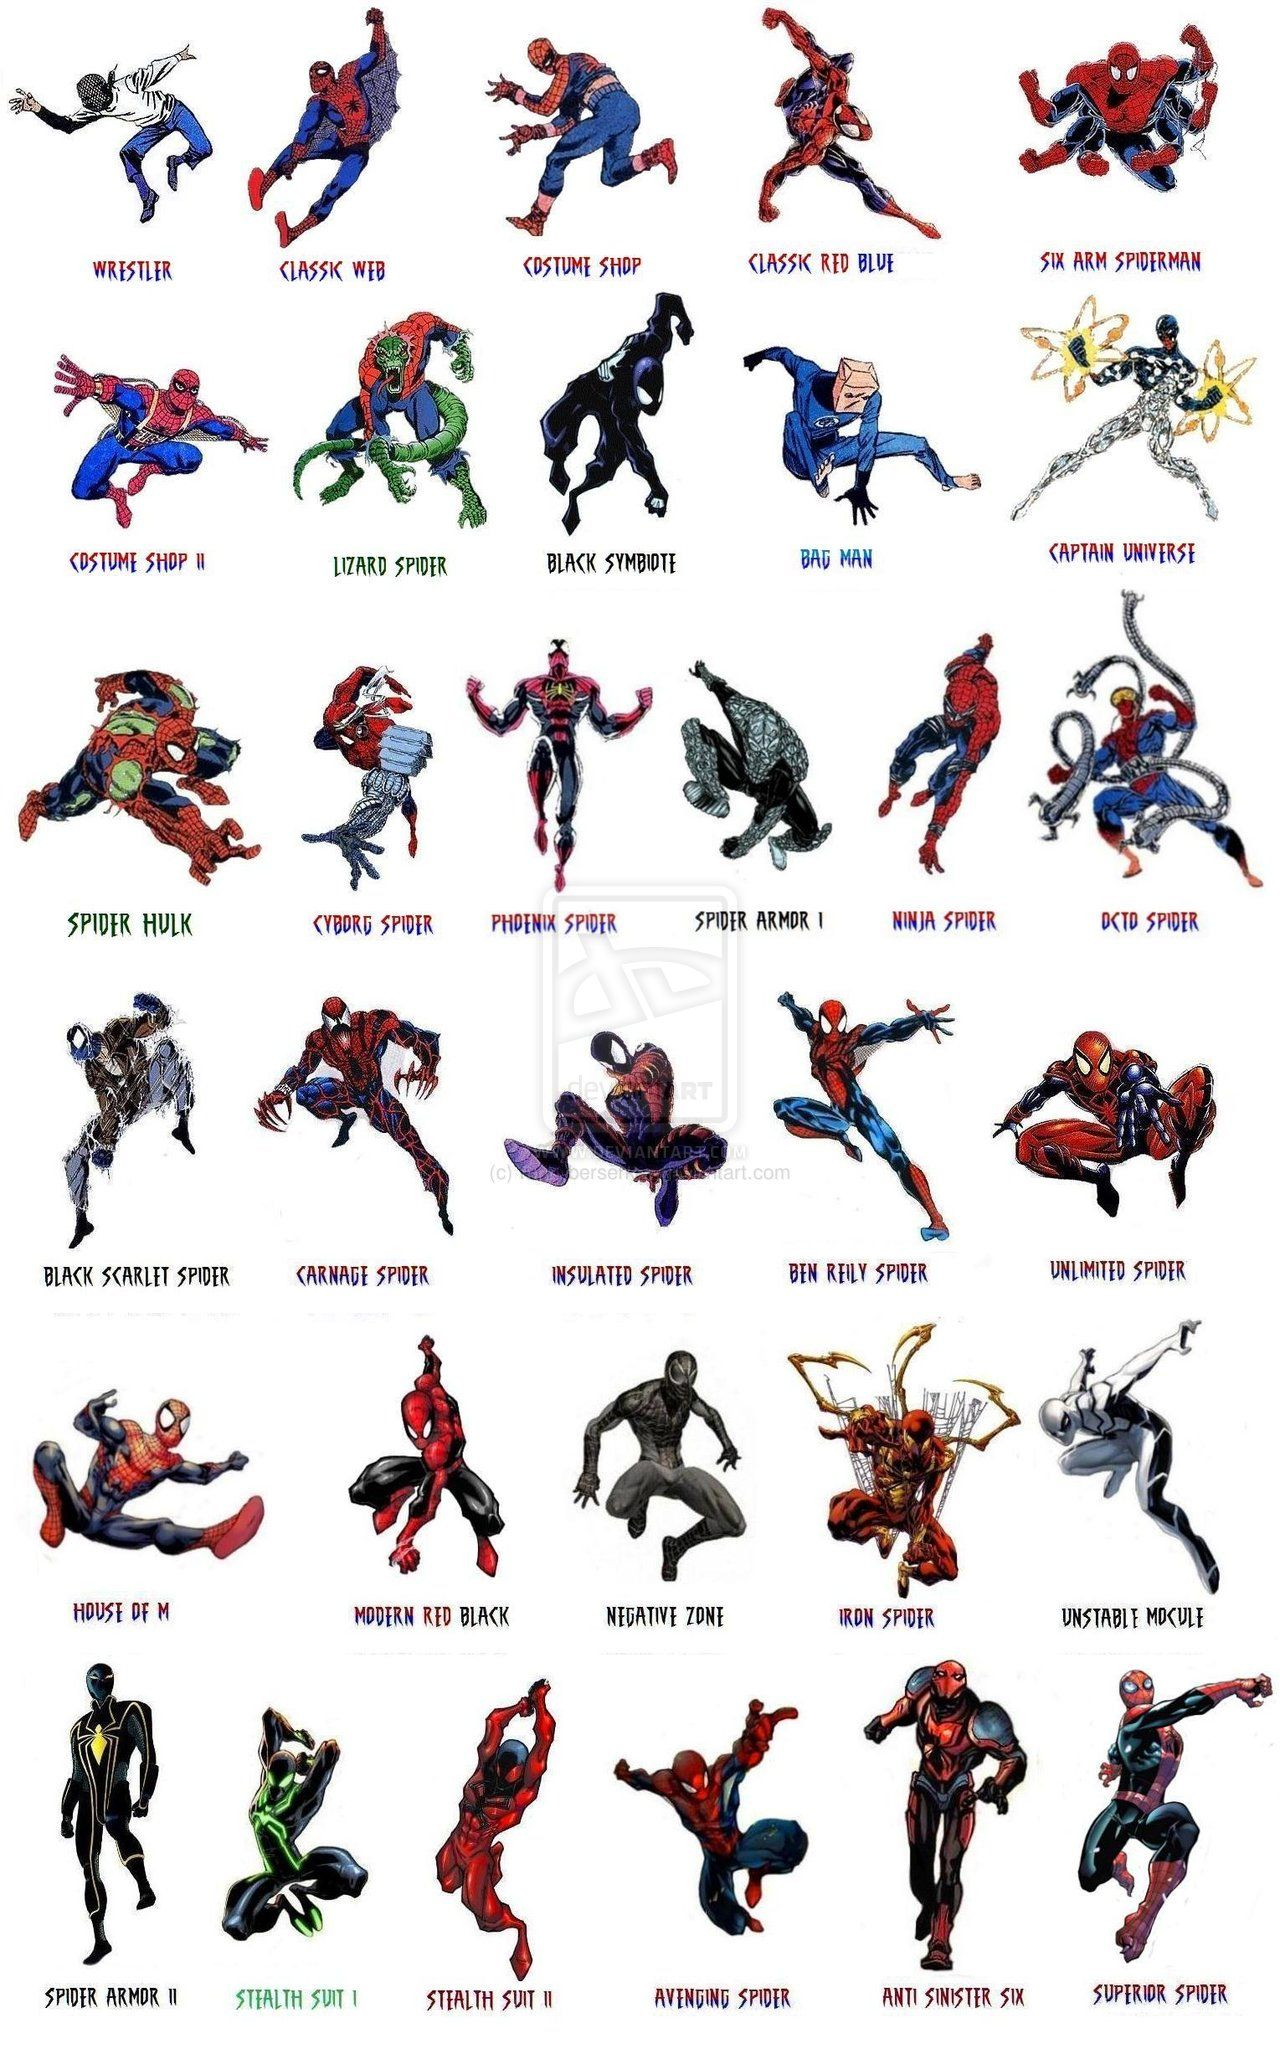 spiderman costume evolutin - Google Search  sc 1 st  Pinterest : spidey costumes  - Germanpascual.Com